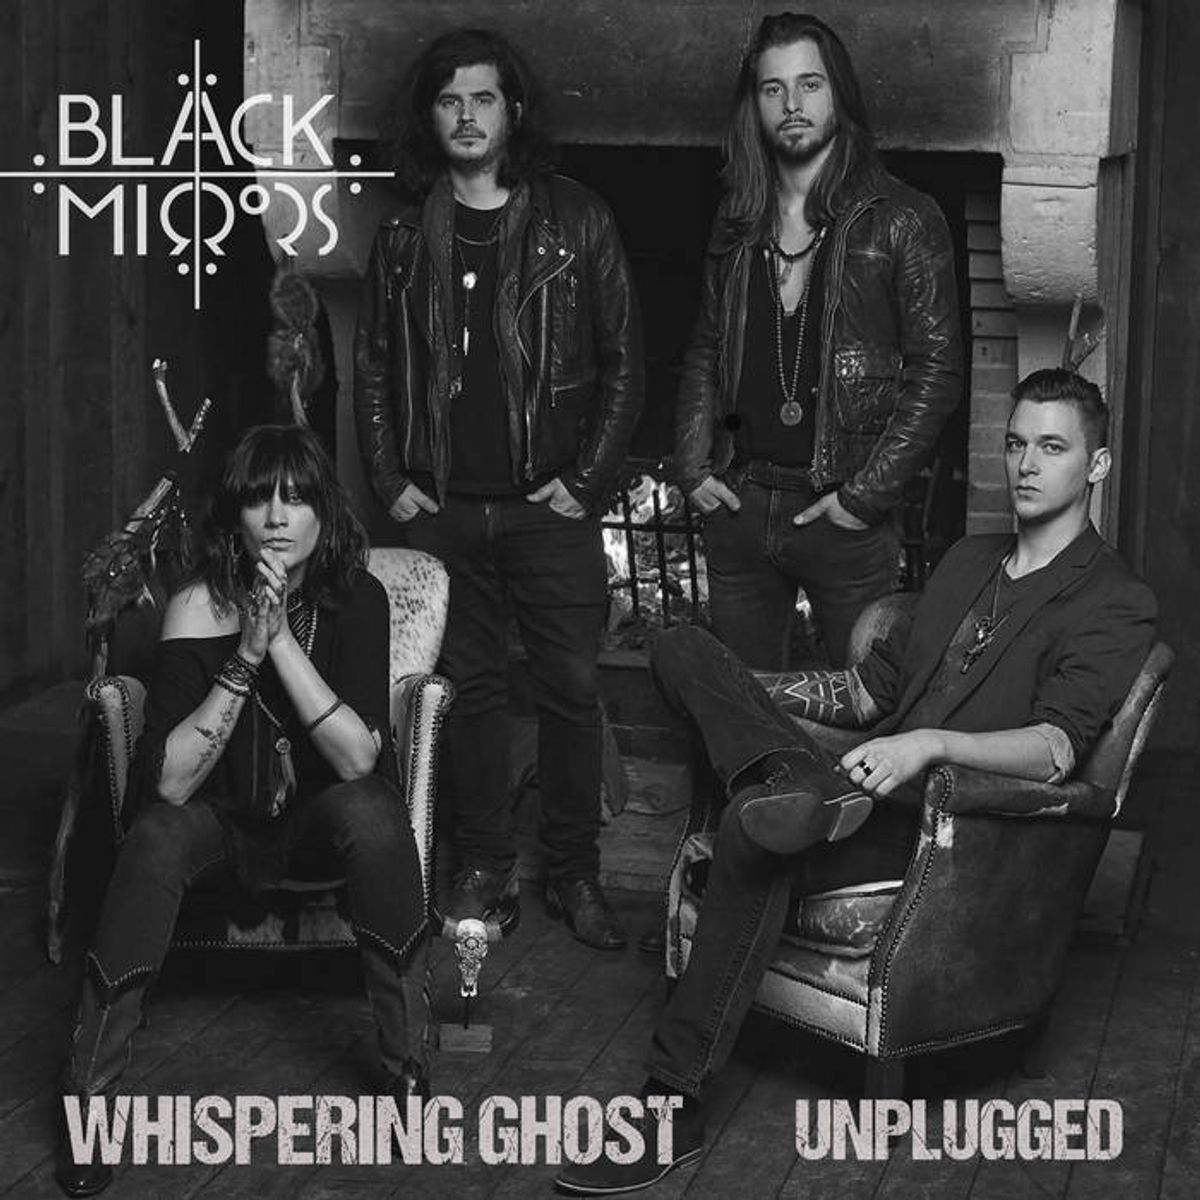 Black Mirrors - Whispering Ghost